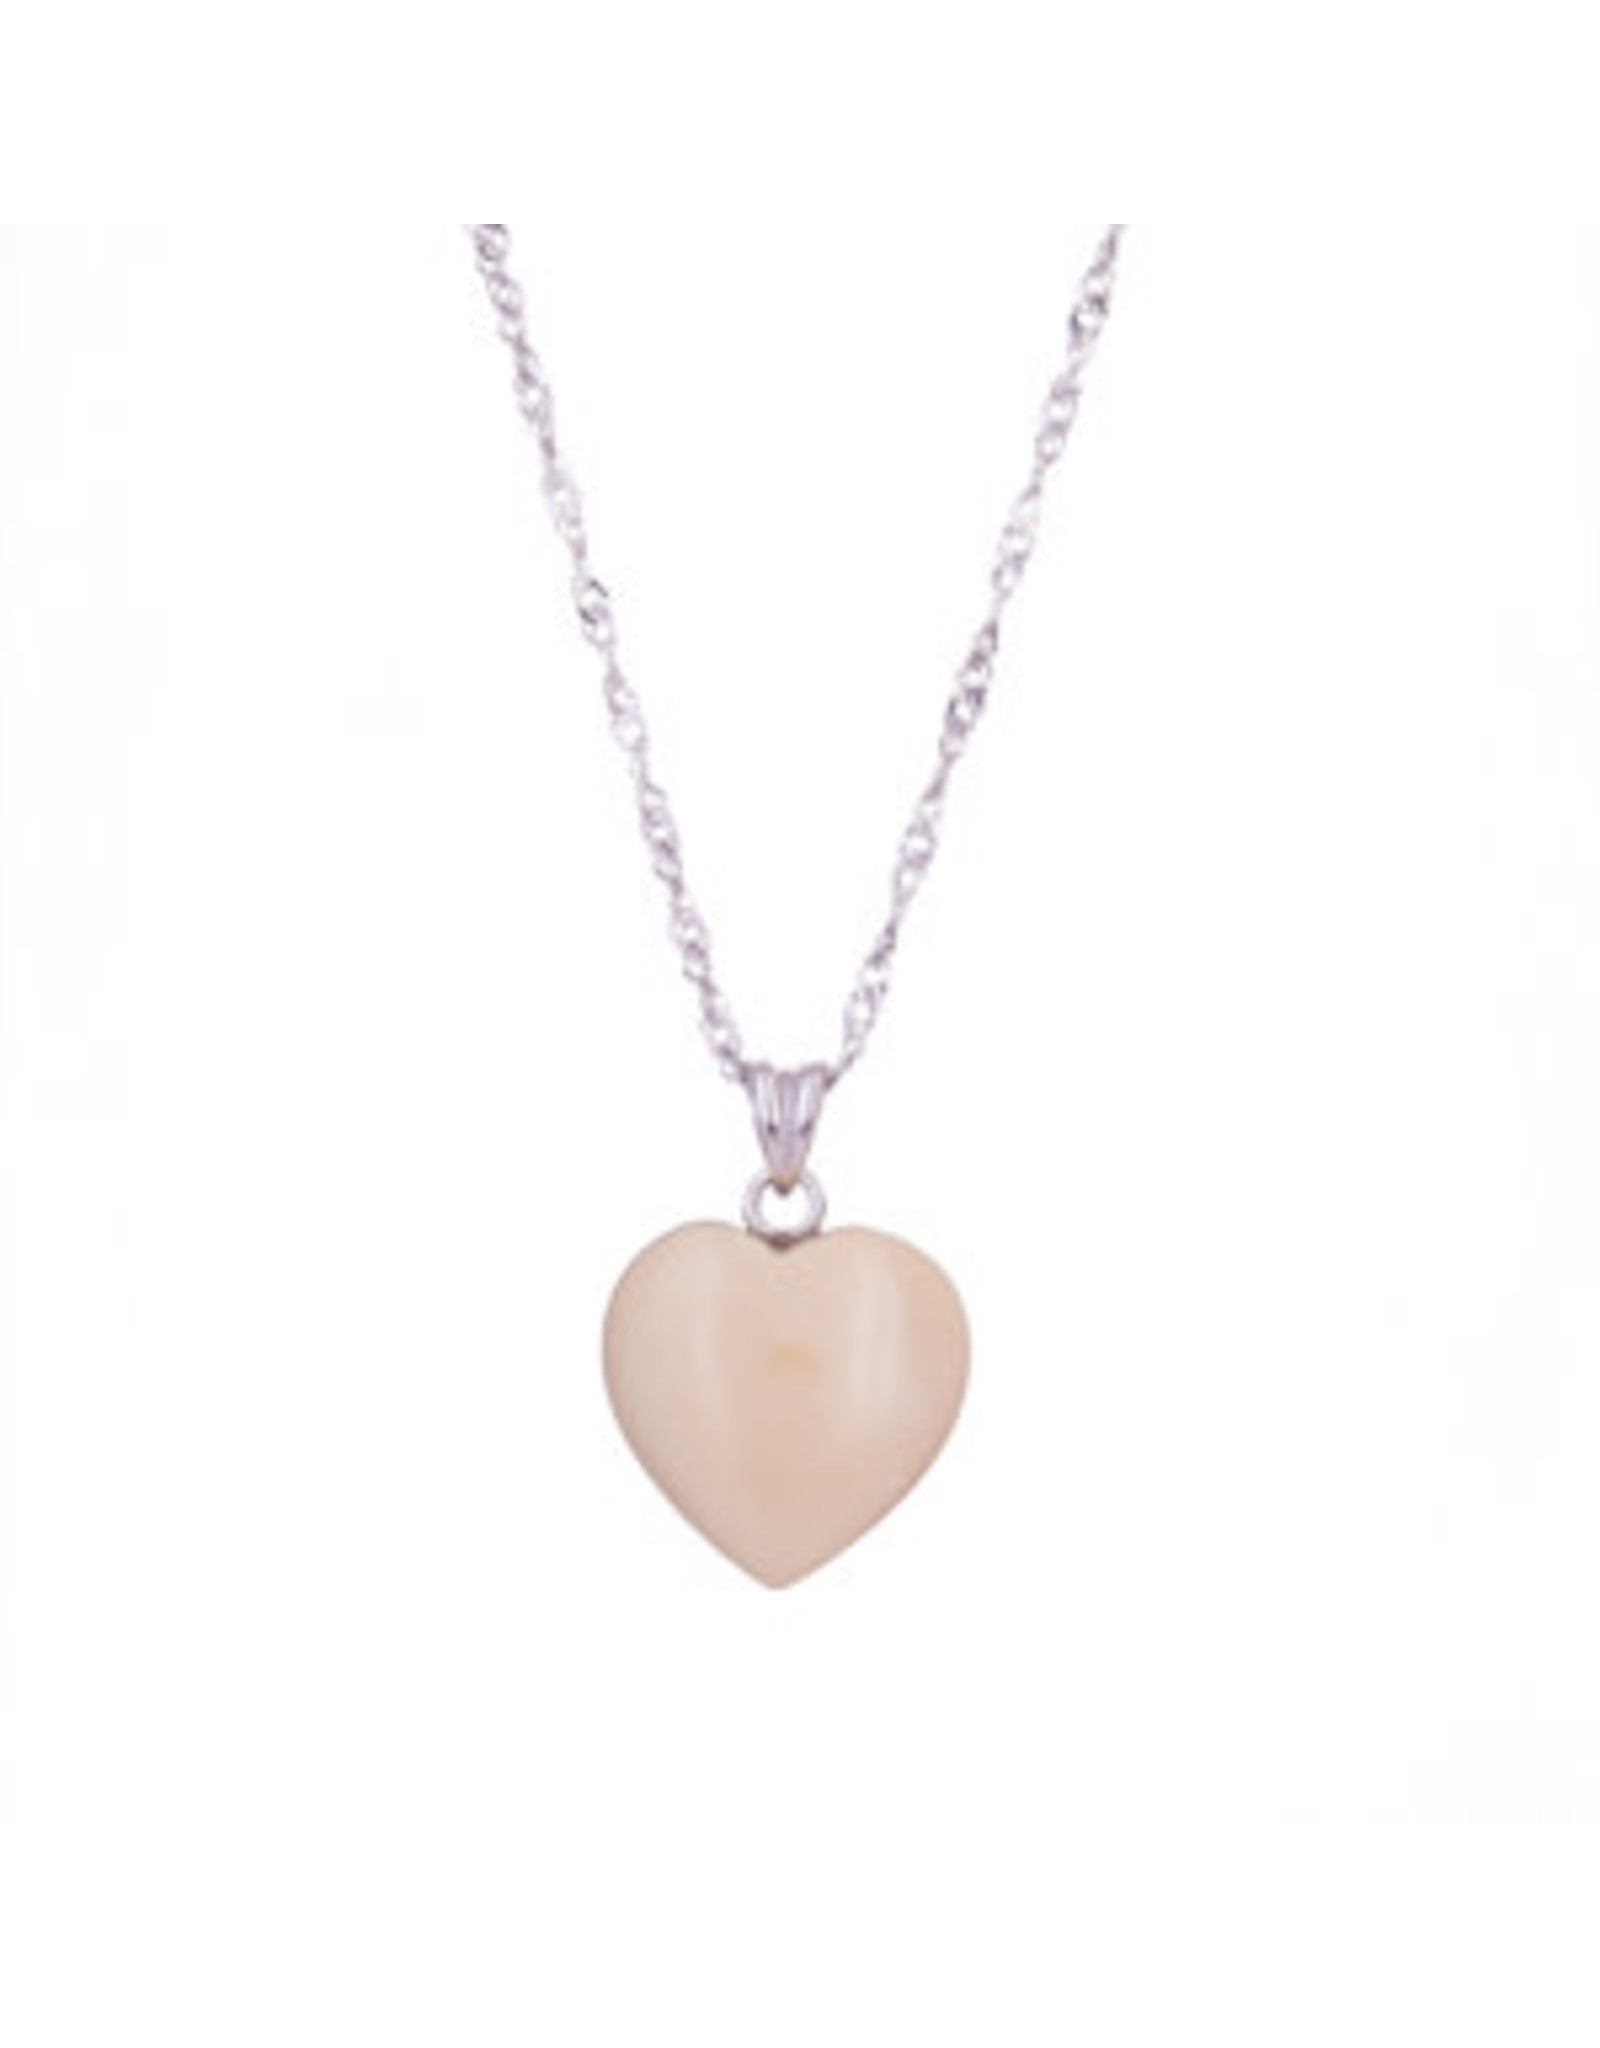 Mammoth Heart Necklace - MPS114